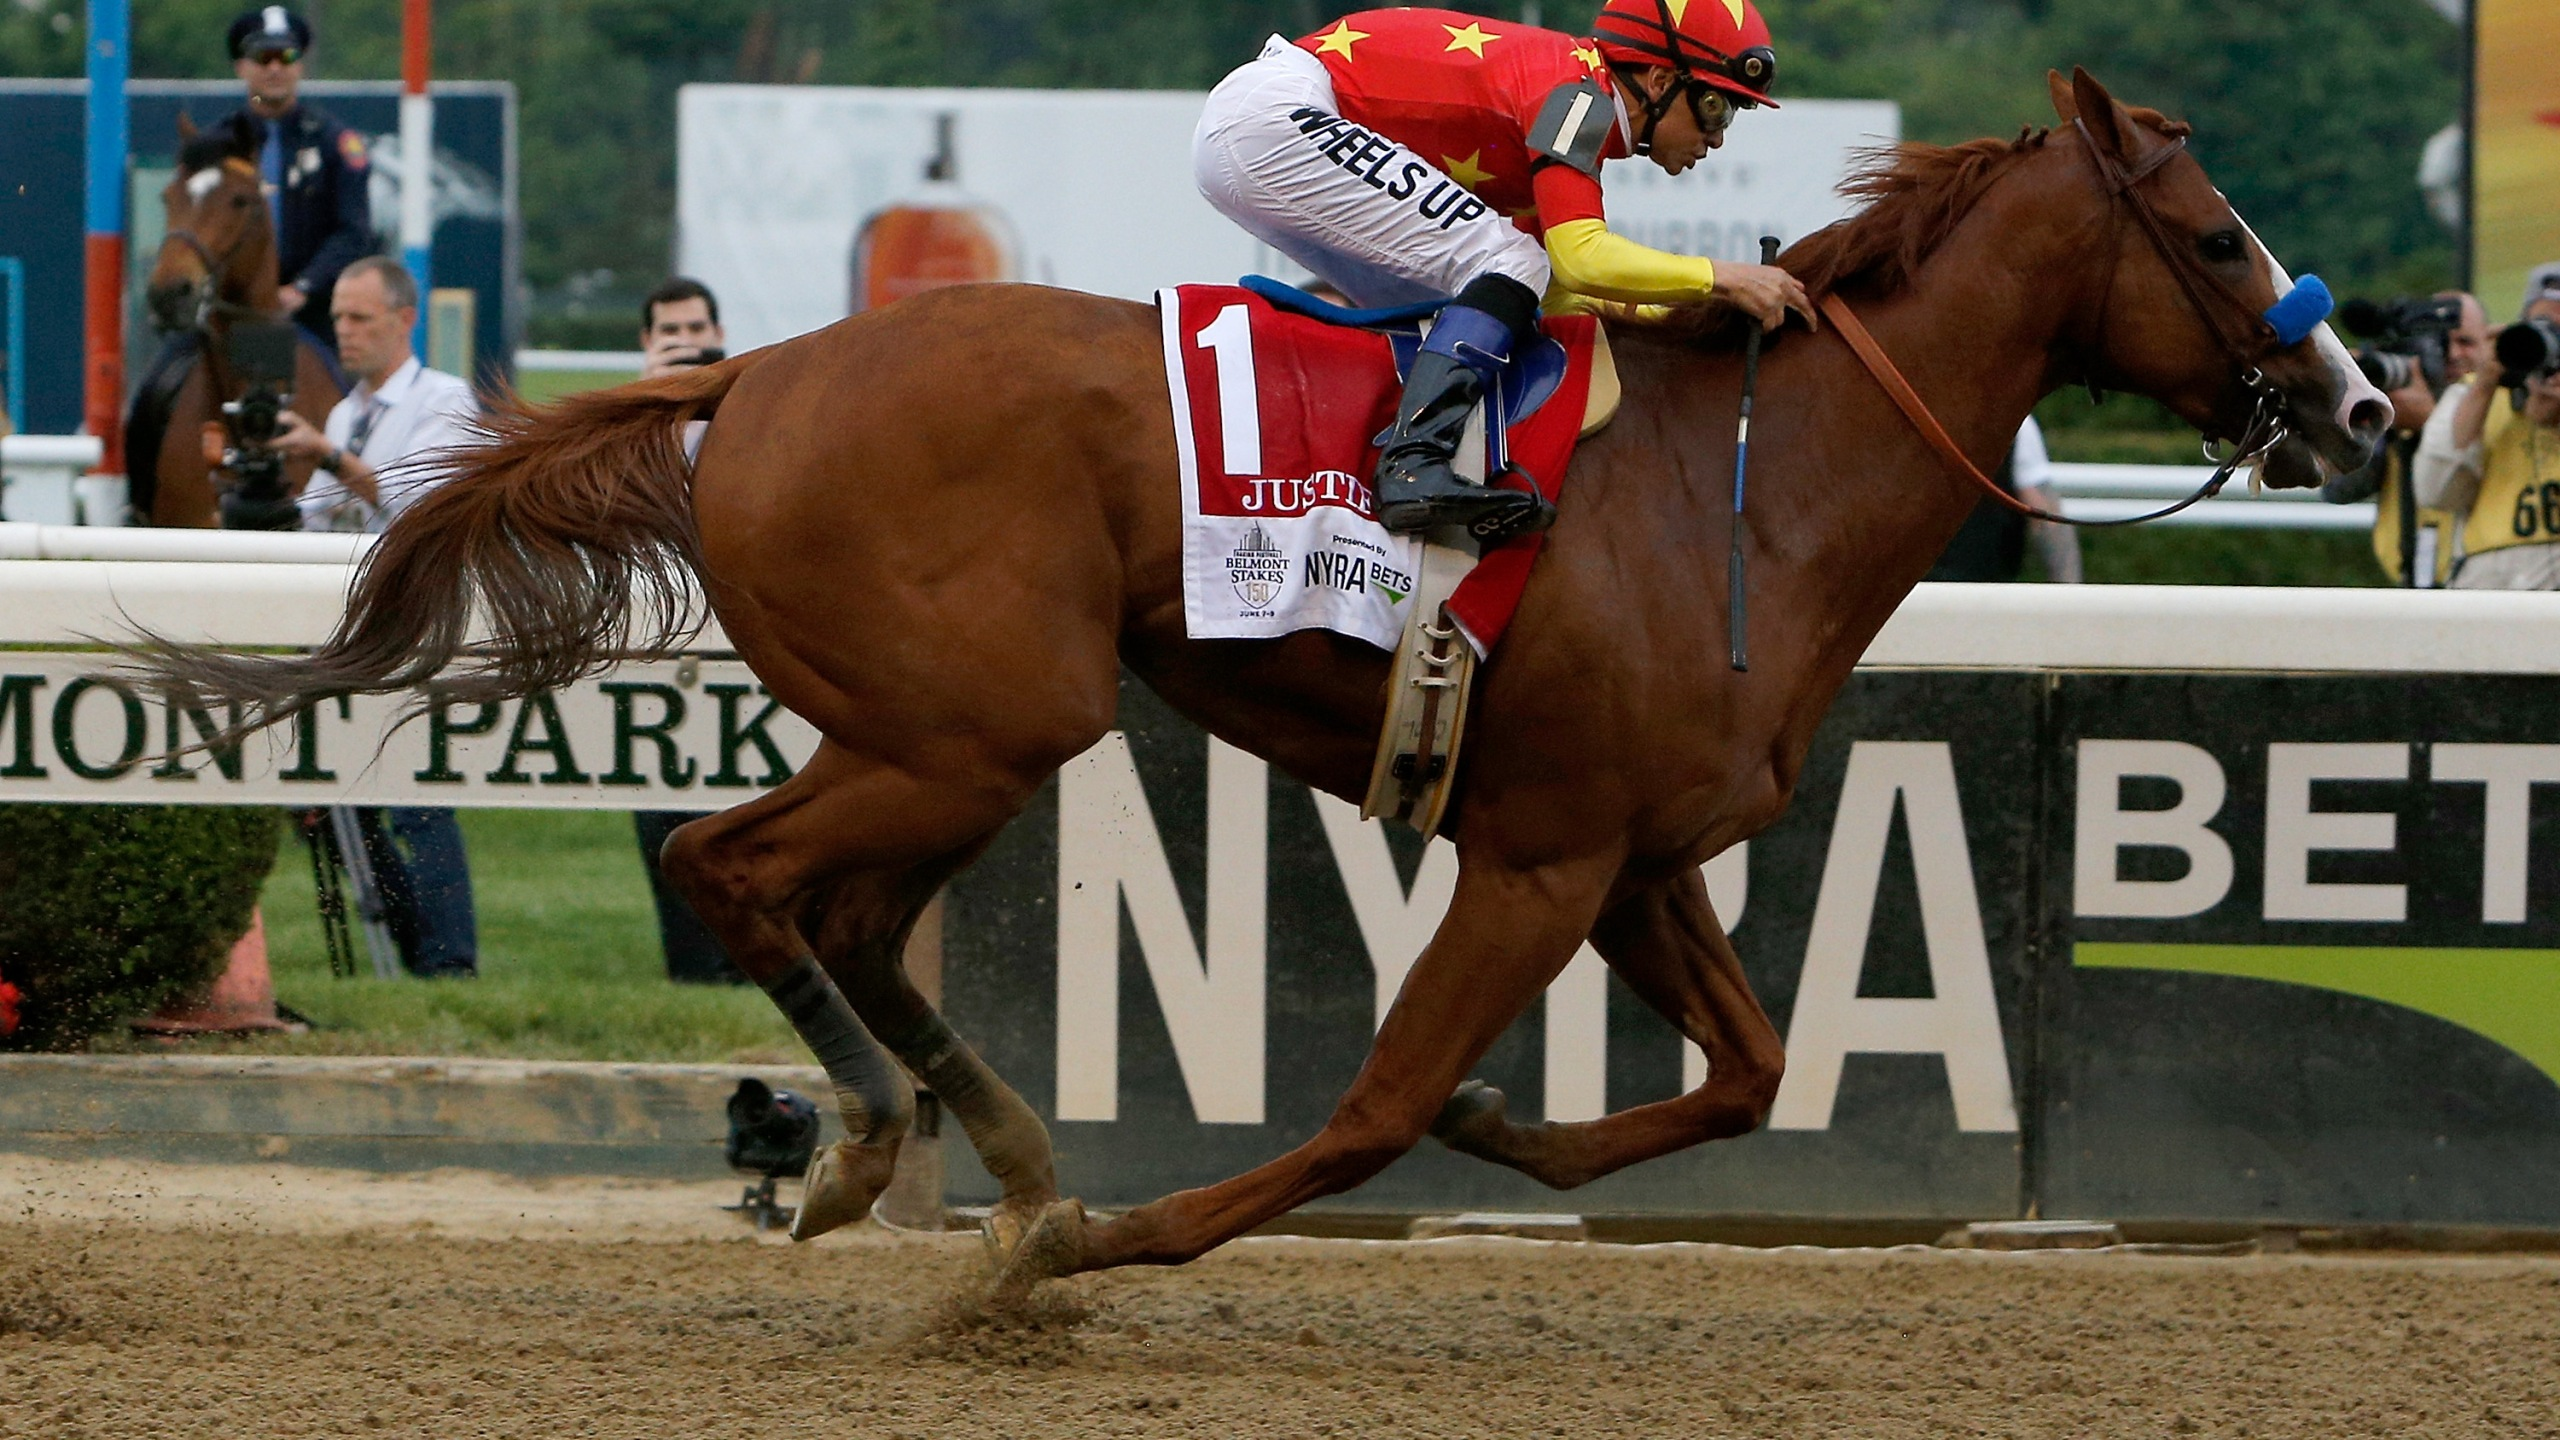 Justify #1, ridden by jockey Mike Smith, crosses the finish line to win the 150th running of the Belmont Stakes at Belmont Park on June 9, 2018 in Elmont, New York. Justify becomes the thirteenth Triple Crown winner and the first since American Pharoah in 2015. (Credit: Michael Reaves/Getty Images)